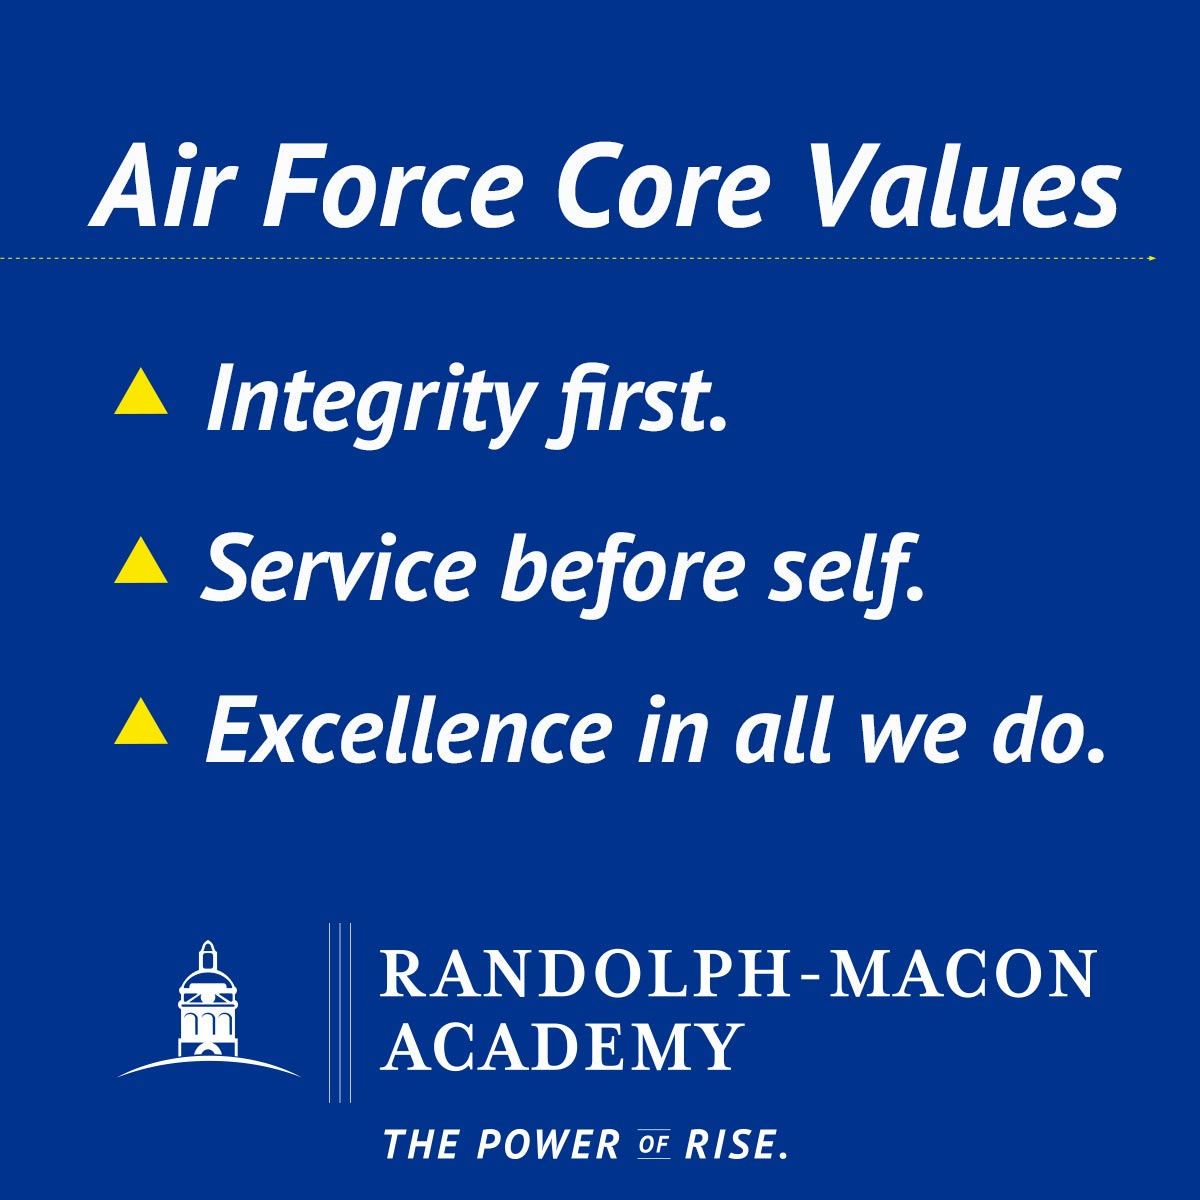 The Air Force core values are: Integrity First, Service Before Self, and Excellence in All We Do.